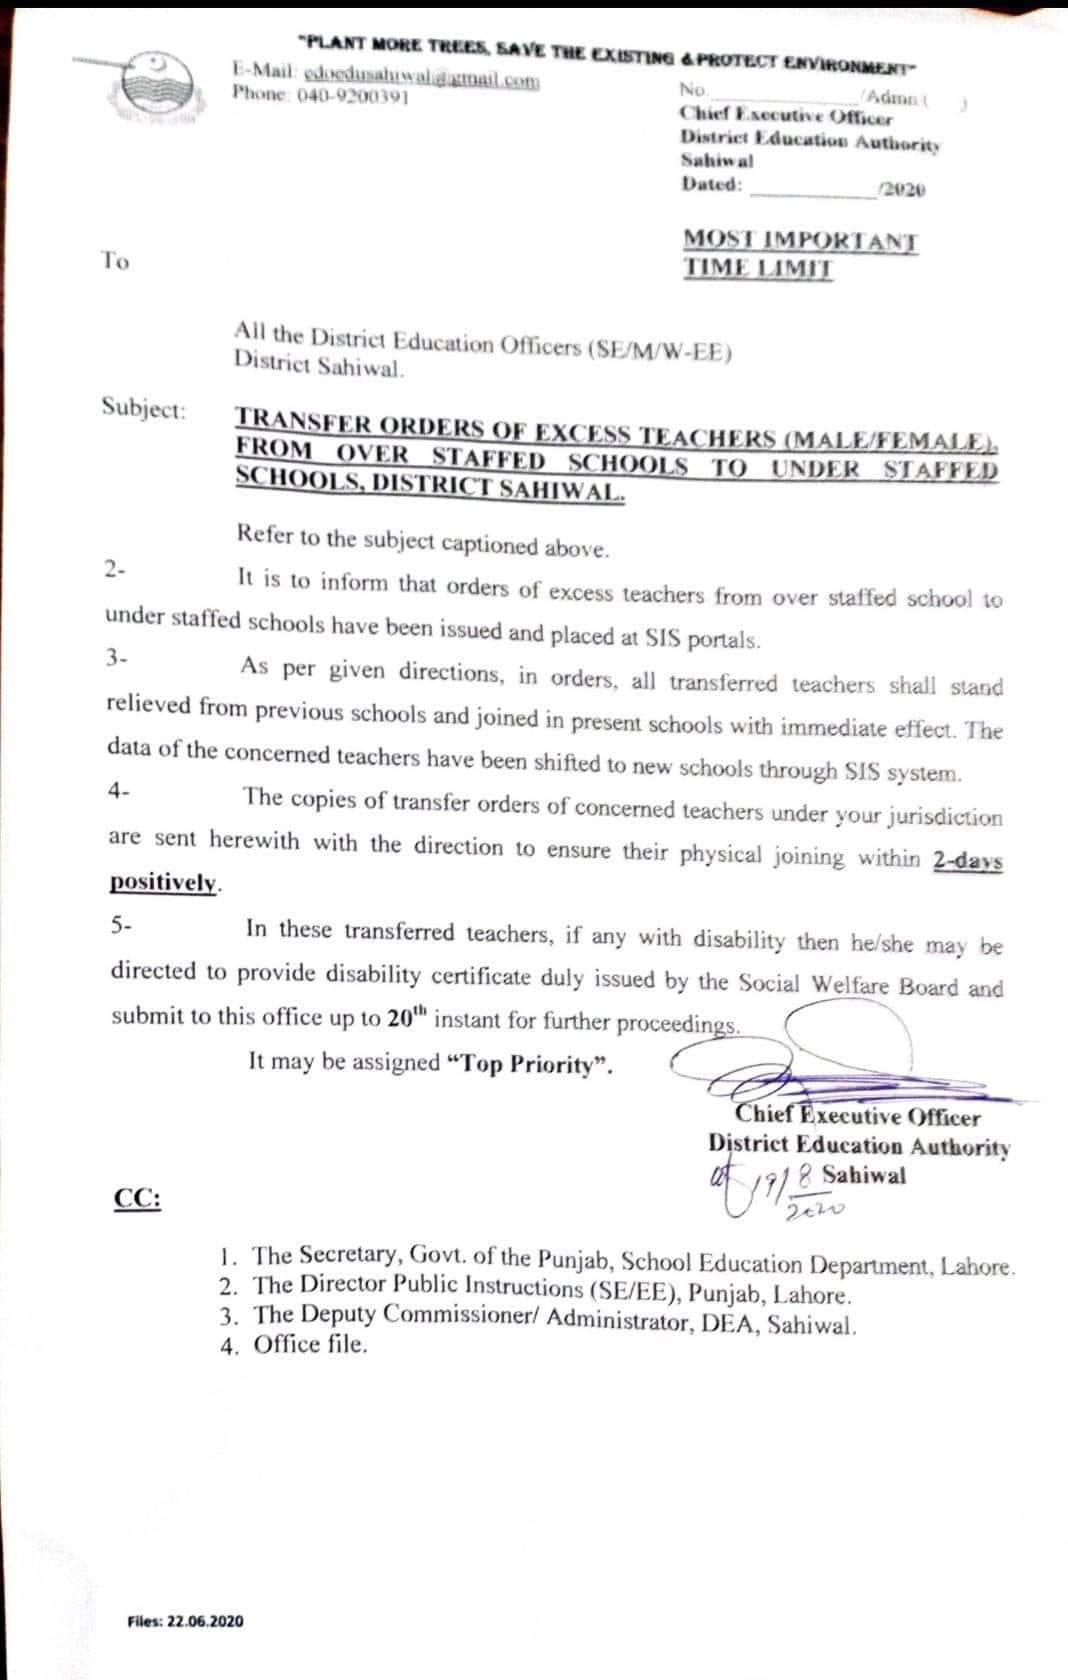 Transfer Orders of Excess Teachers (MaleFemale) From Over Staffed Schools to Under Staffed Schools